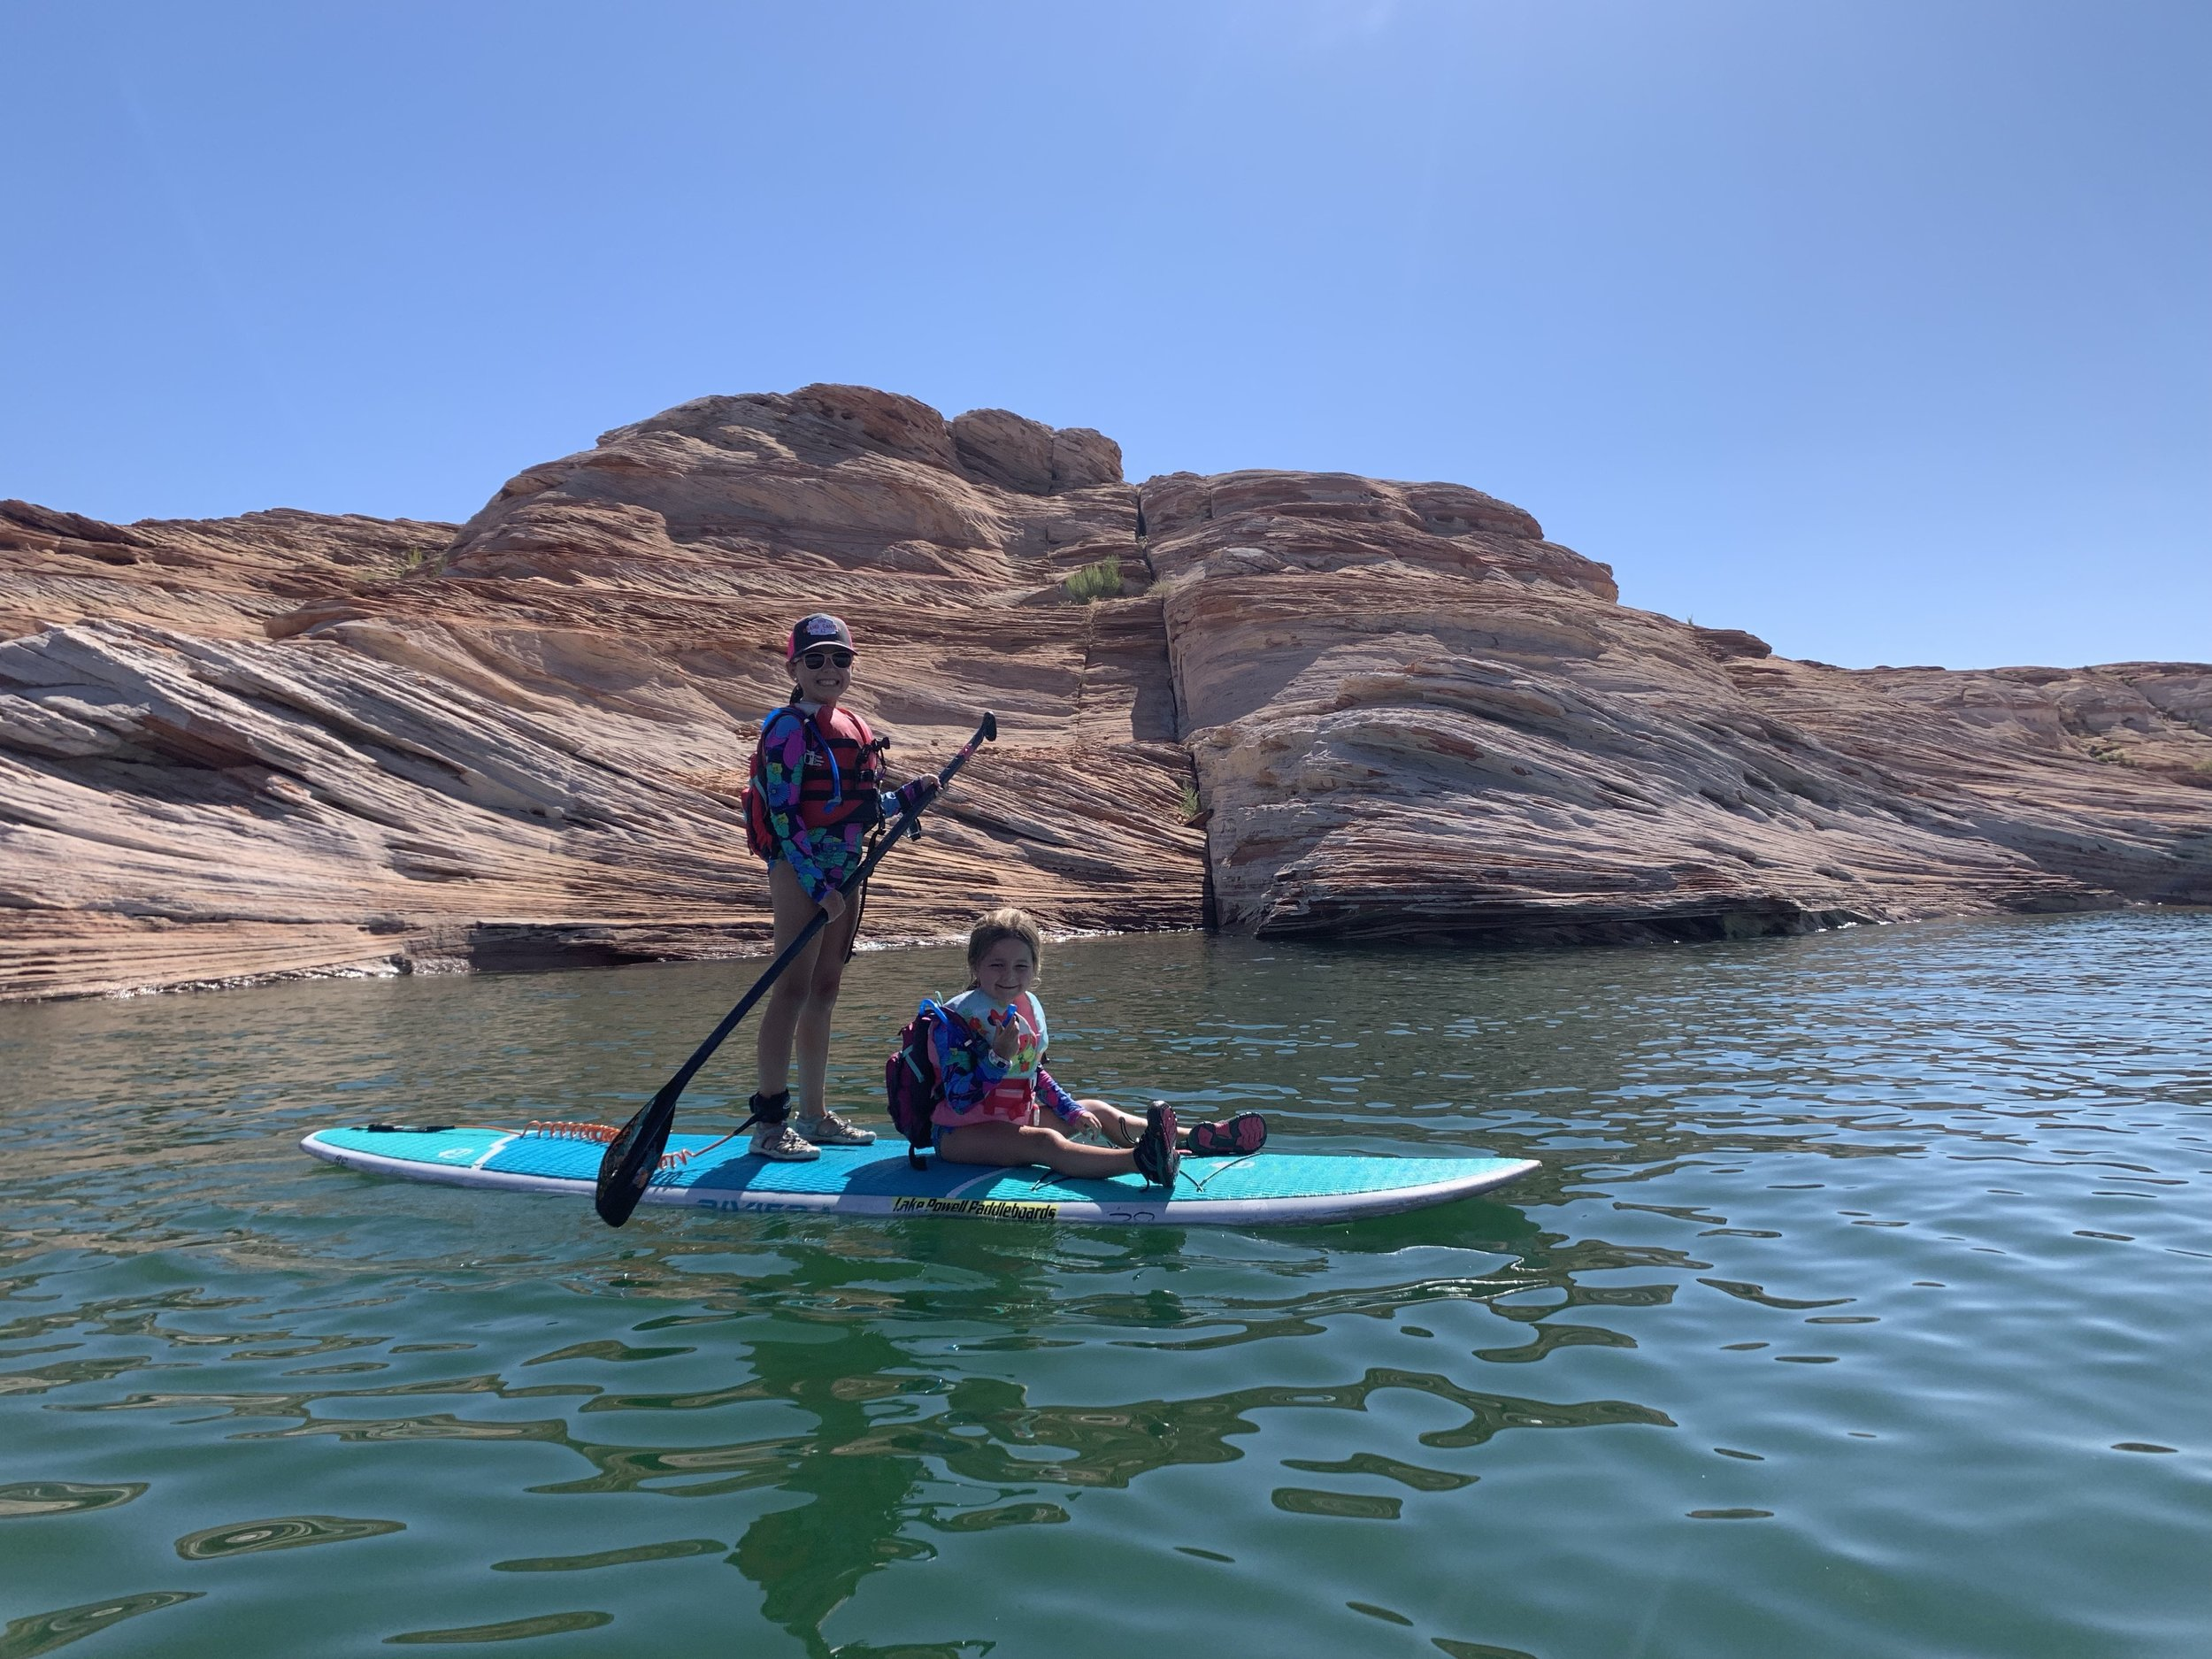 Favorite water activity - This was a tie…. Whitewater rafting on the Colorado River and paddle boarding on Lake Powell through the Antelope Slot Canyon